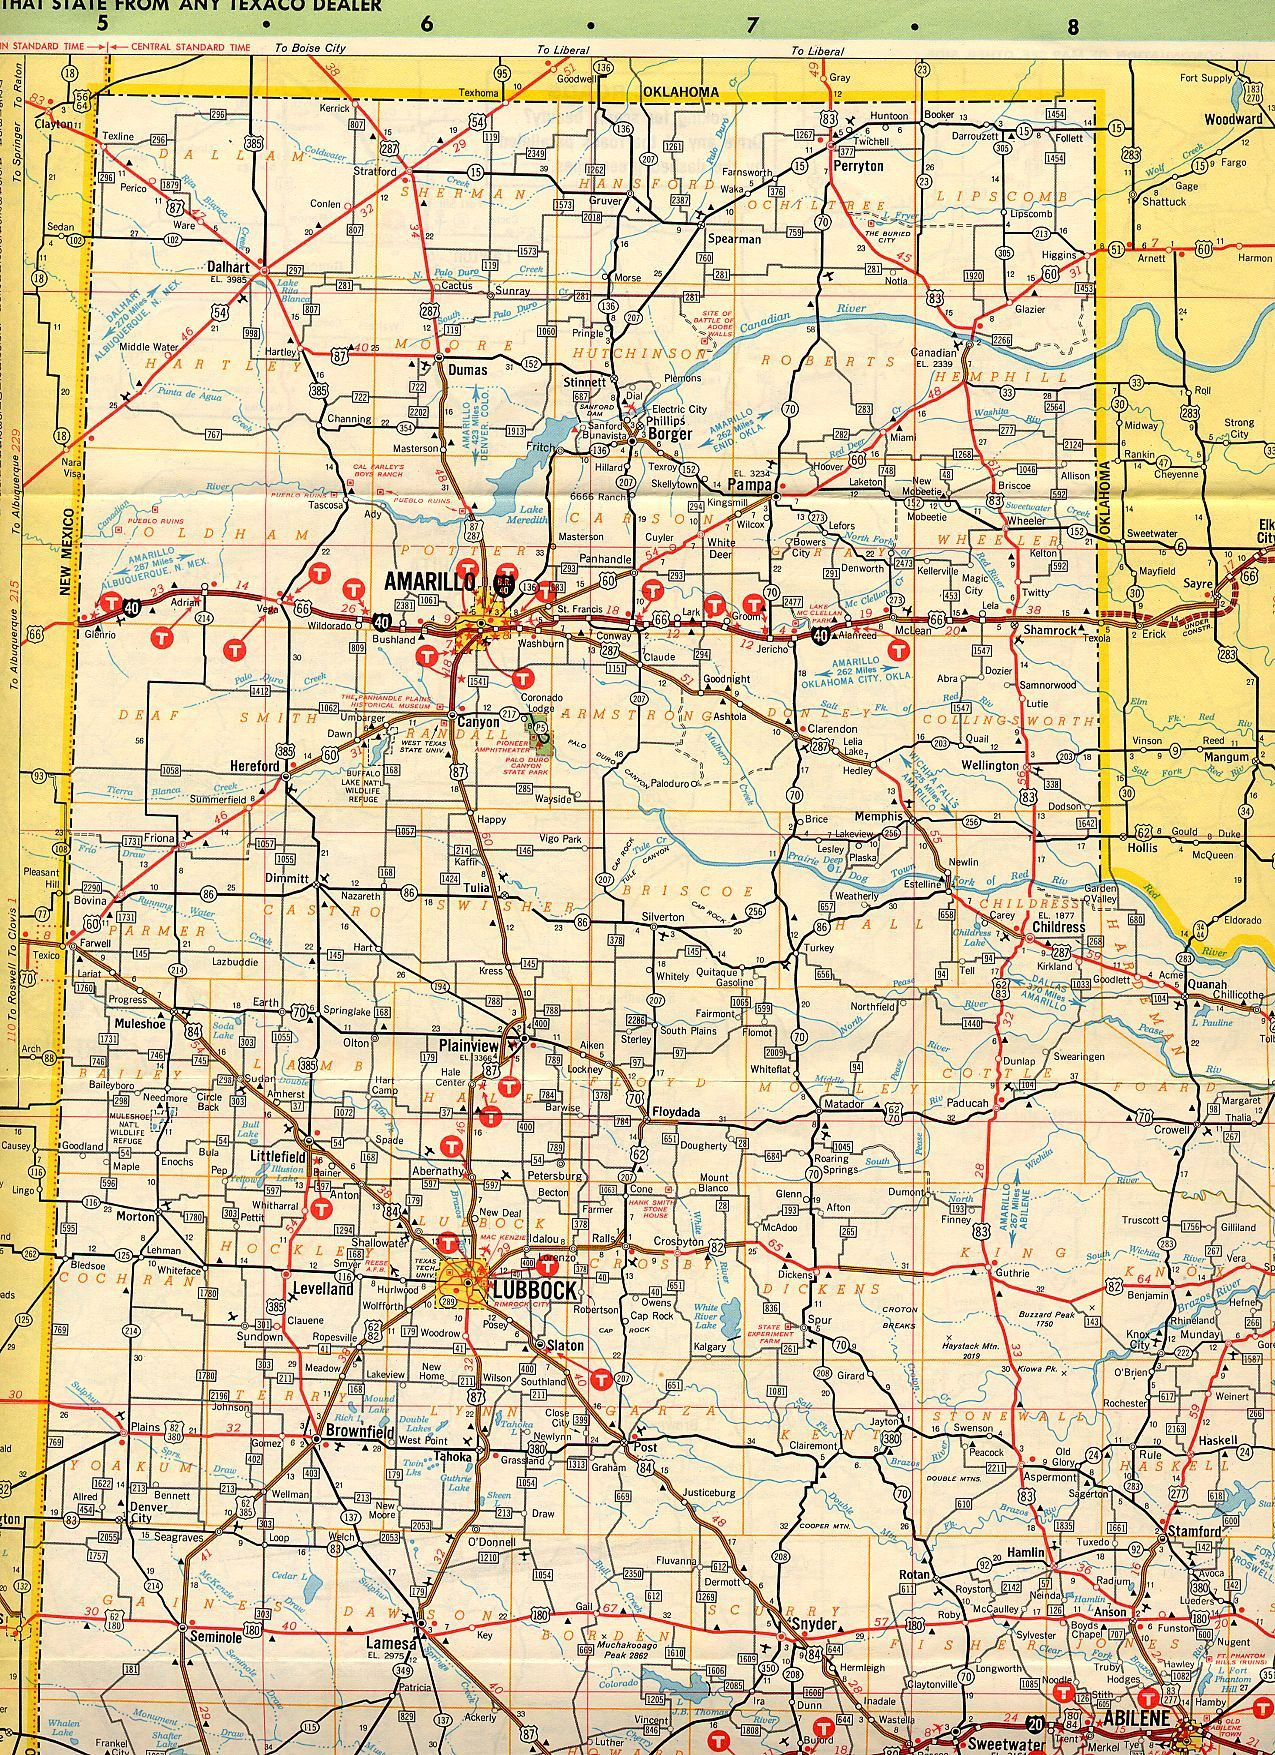 Texas Panhandle Map | Business Ideas 2013